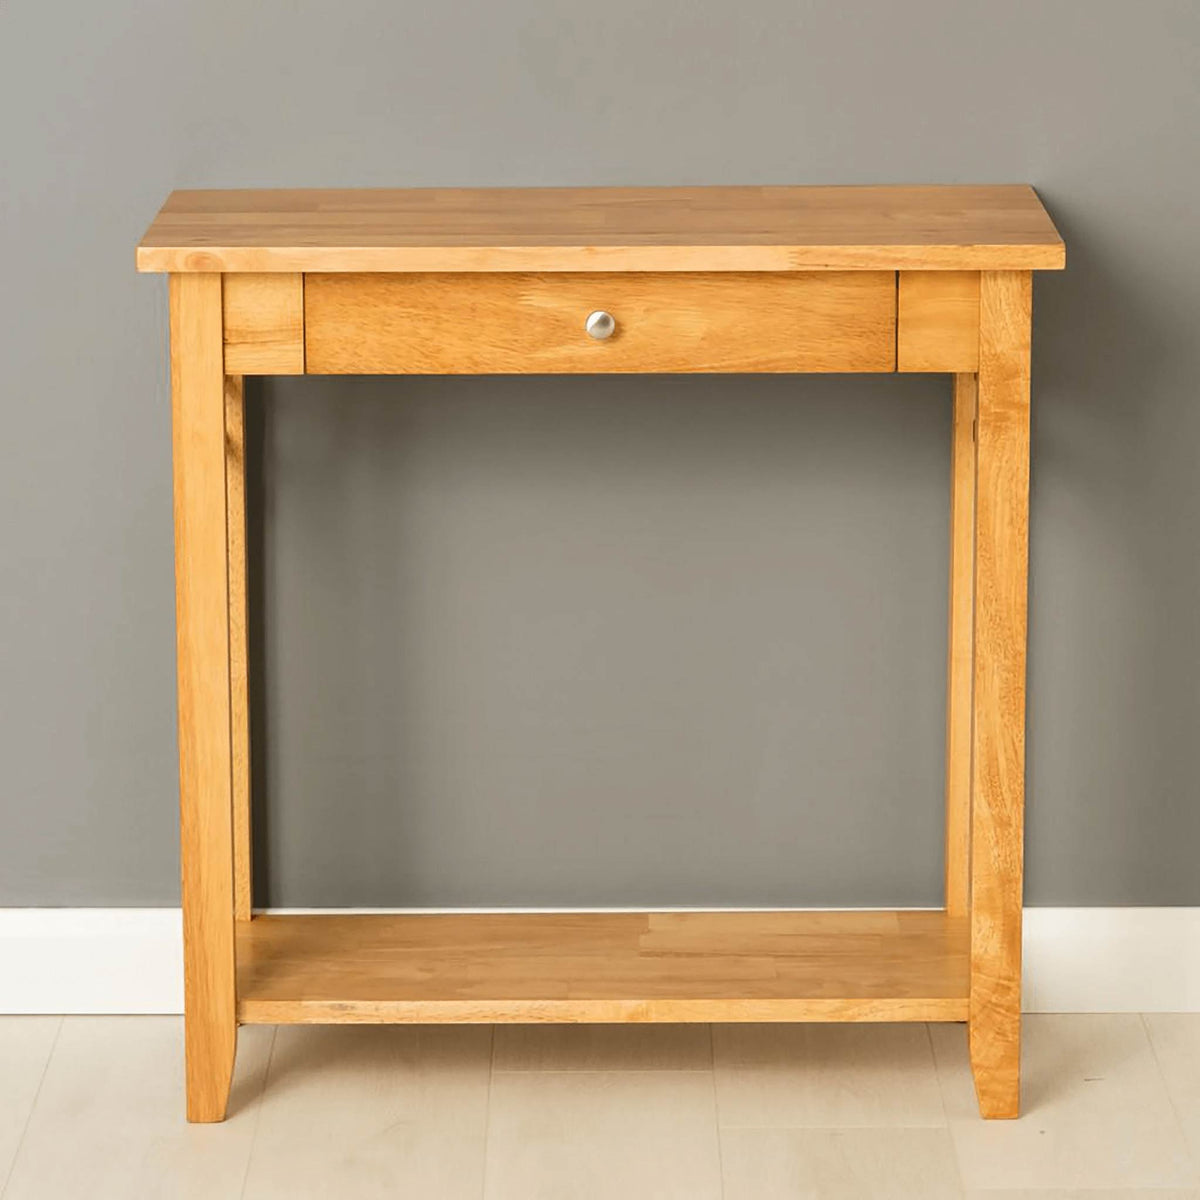 Oxford Light Oak Console Table - front view